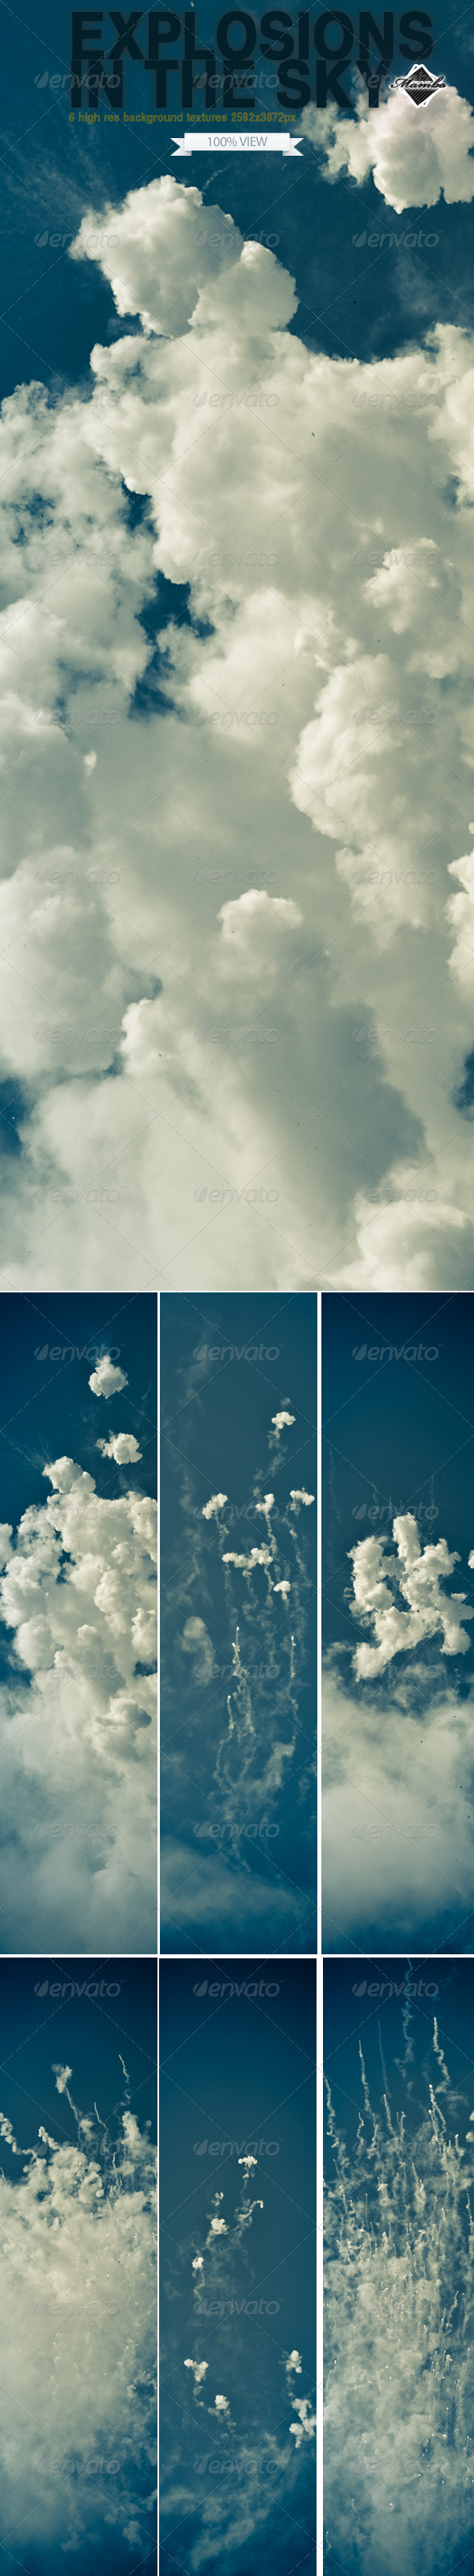 GraphicRiver Explosions in the sky 179602